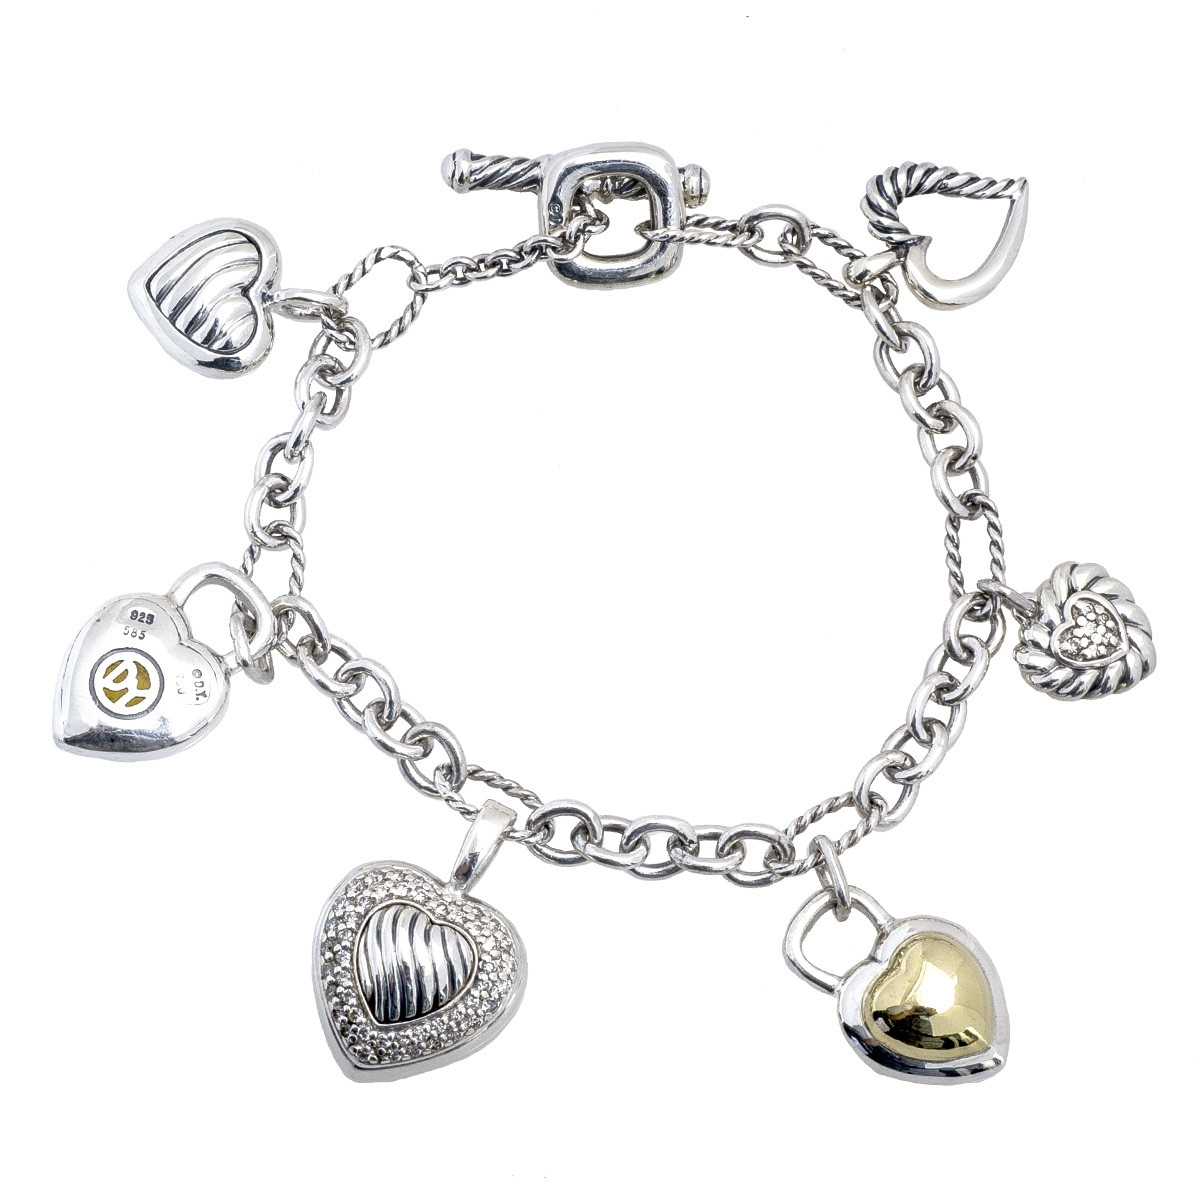 David Yurman Charm Bracelet: Vintage David Yurman 0.40 CTW Diamond & Citrine Heart